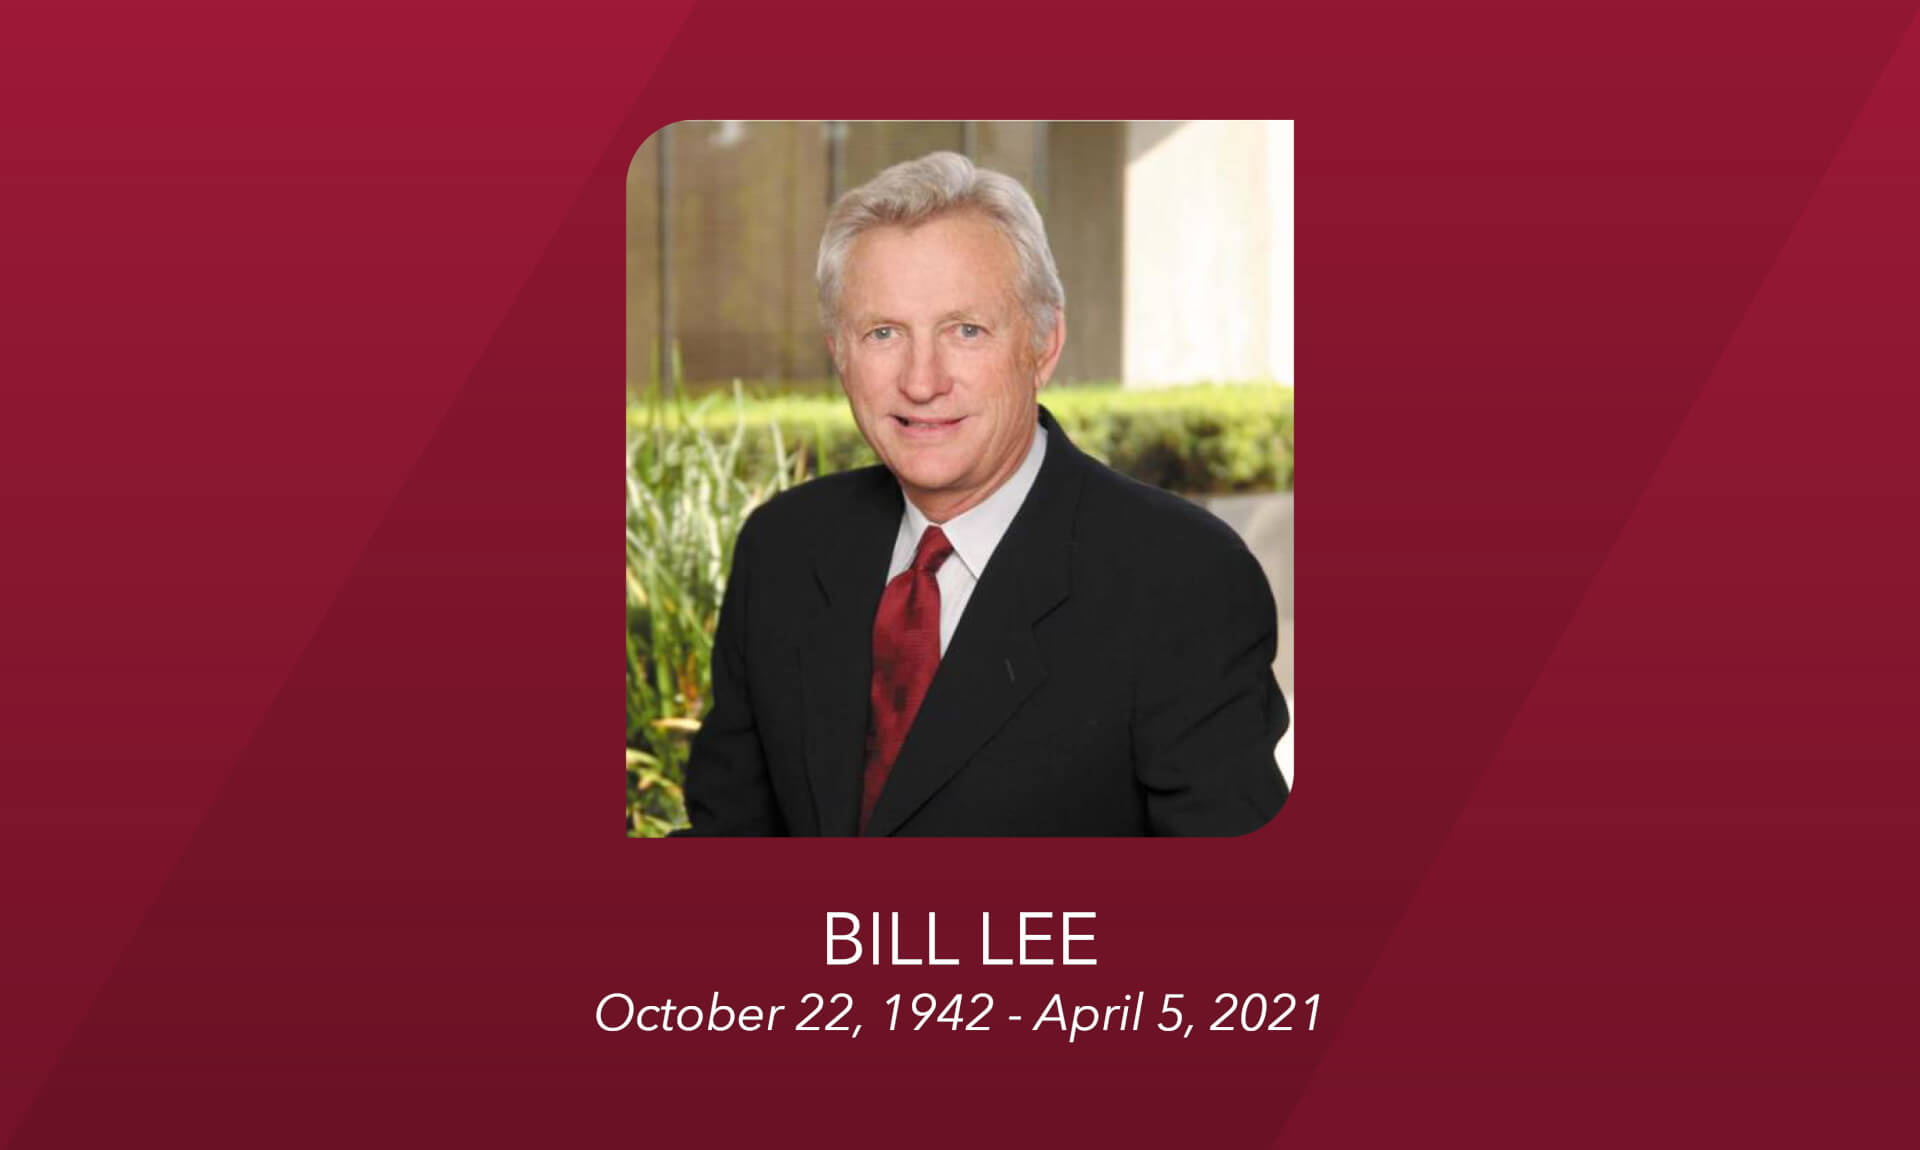 Commercial Real Estate Visionary and Founder of Lee & Associates, Bill Lee, Dies at the Age of 78